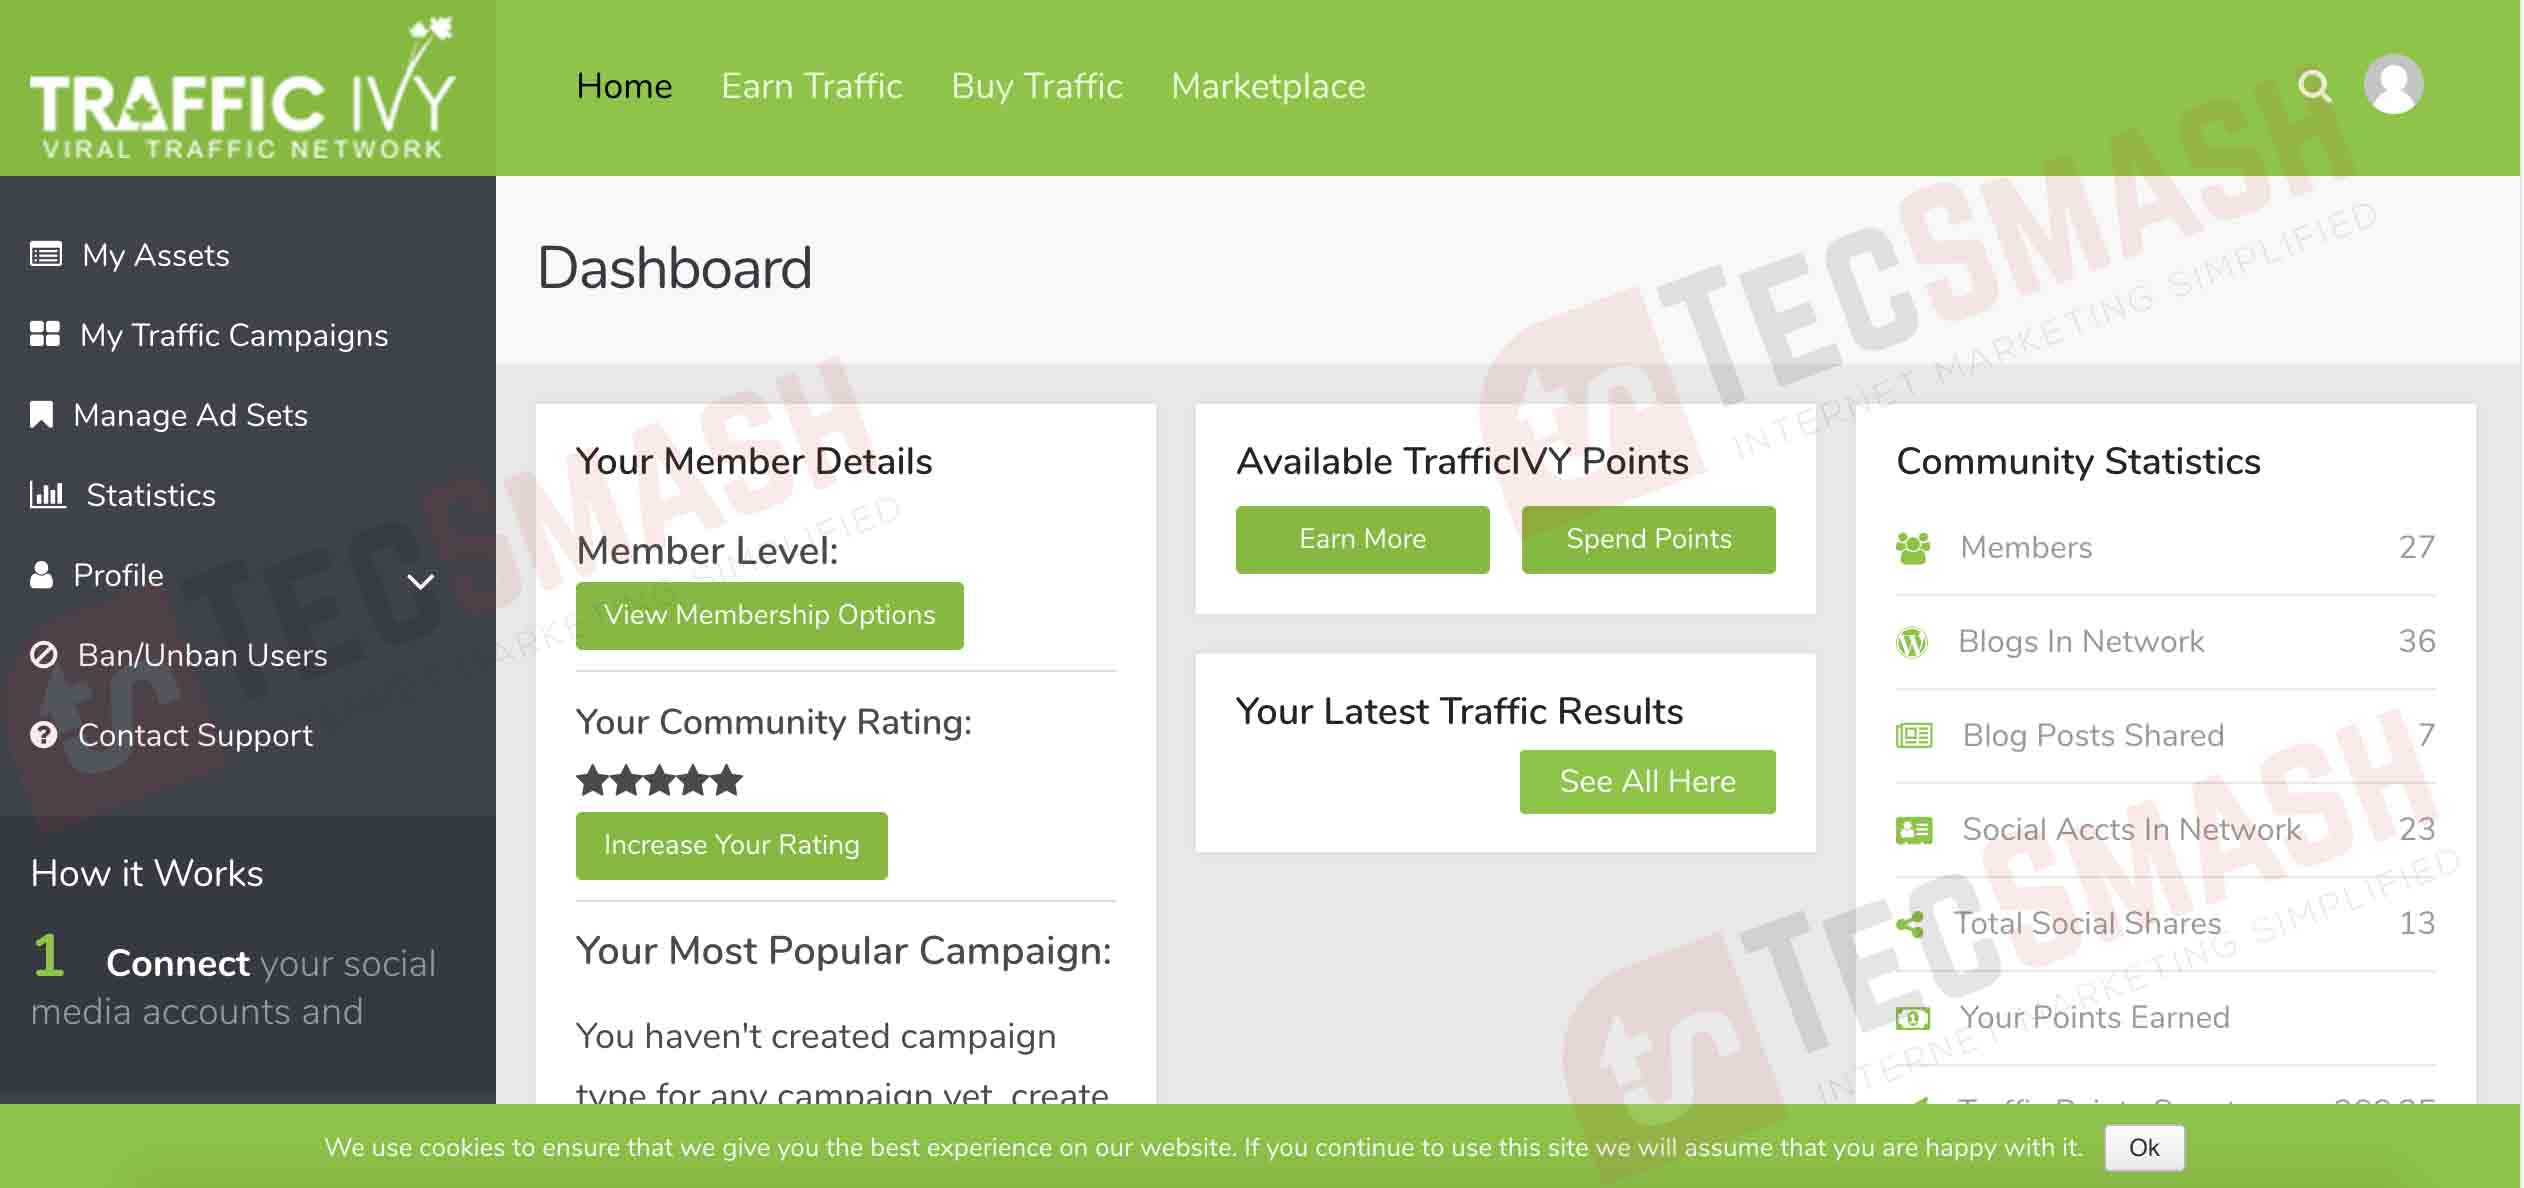 Traffic Ivy Dashboard